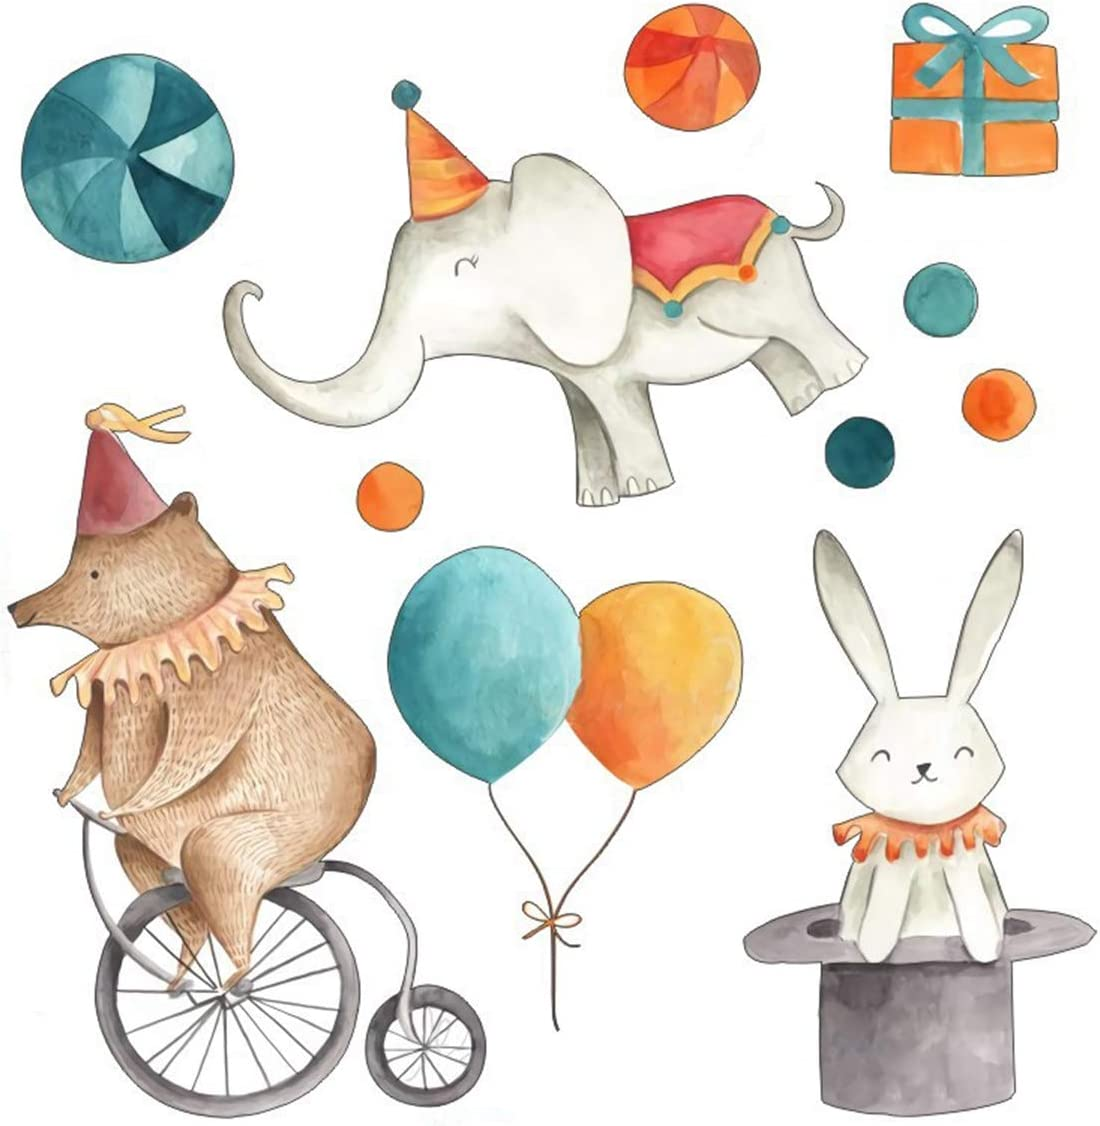 VIAYA Creative Cartoon Animal Wall Stickers Elephant Rabbit Circus Wall Decal Peelable and Removable Wall Stickers for Kids Nursery Bedroom Living Room,17x17inch